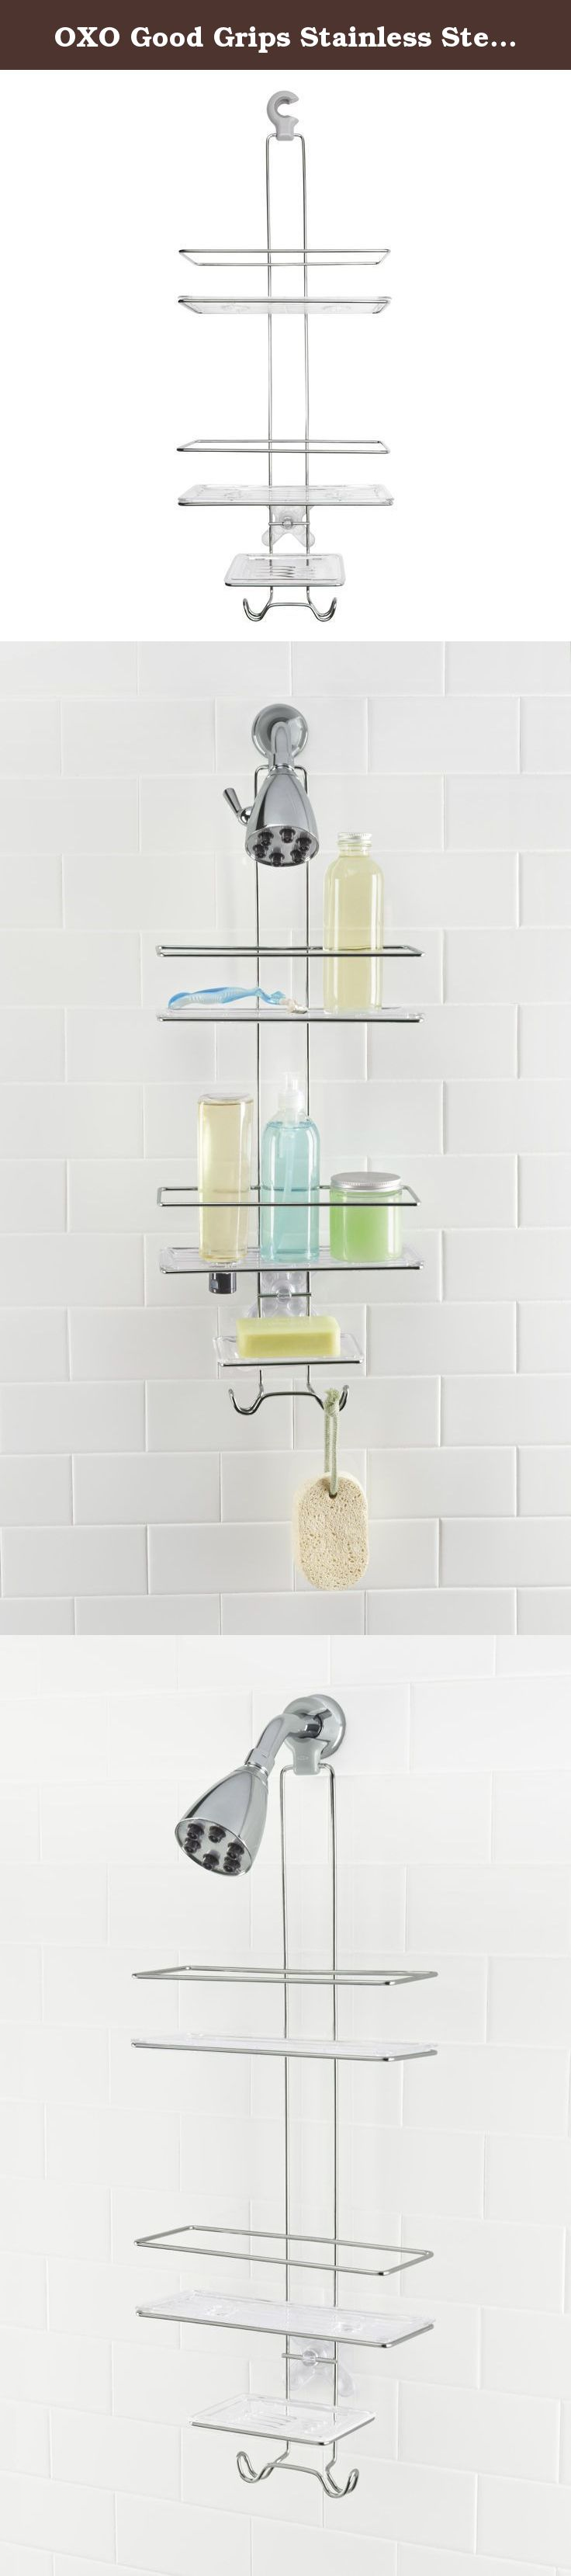 Oxo Bathroom Accessories Oxo Good Grips Stainless Steel Shower Caddy Get More Storage